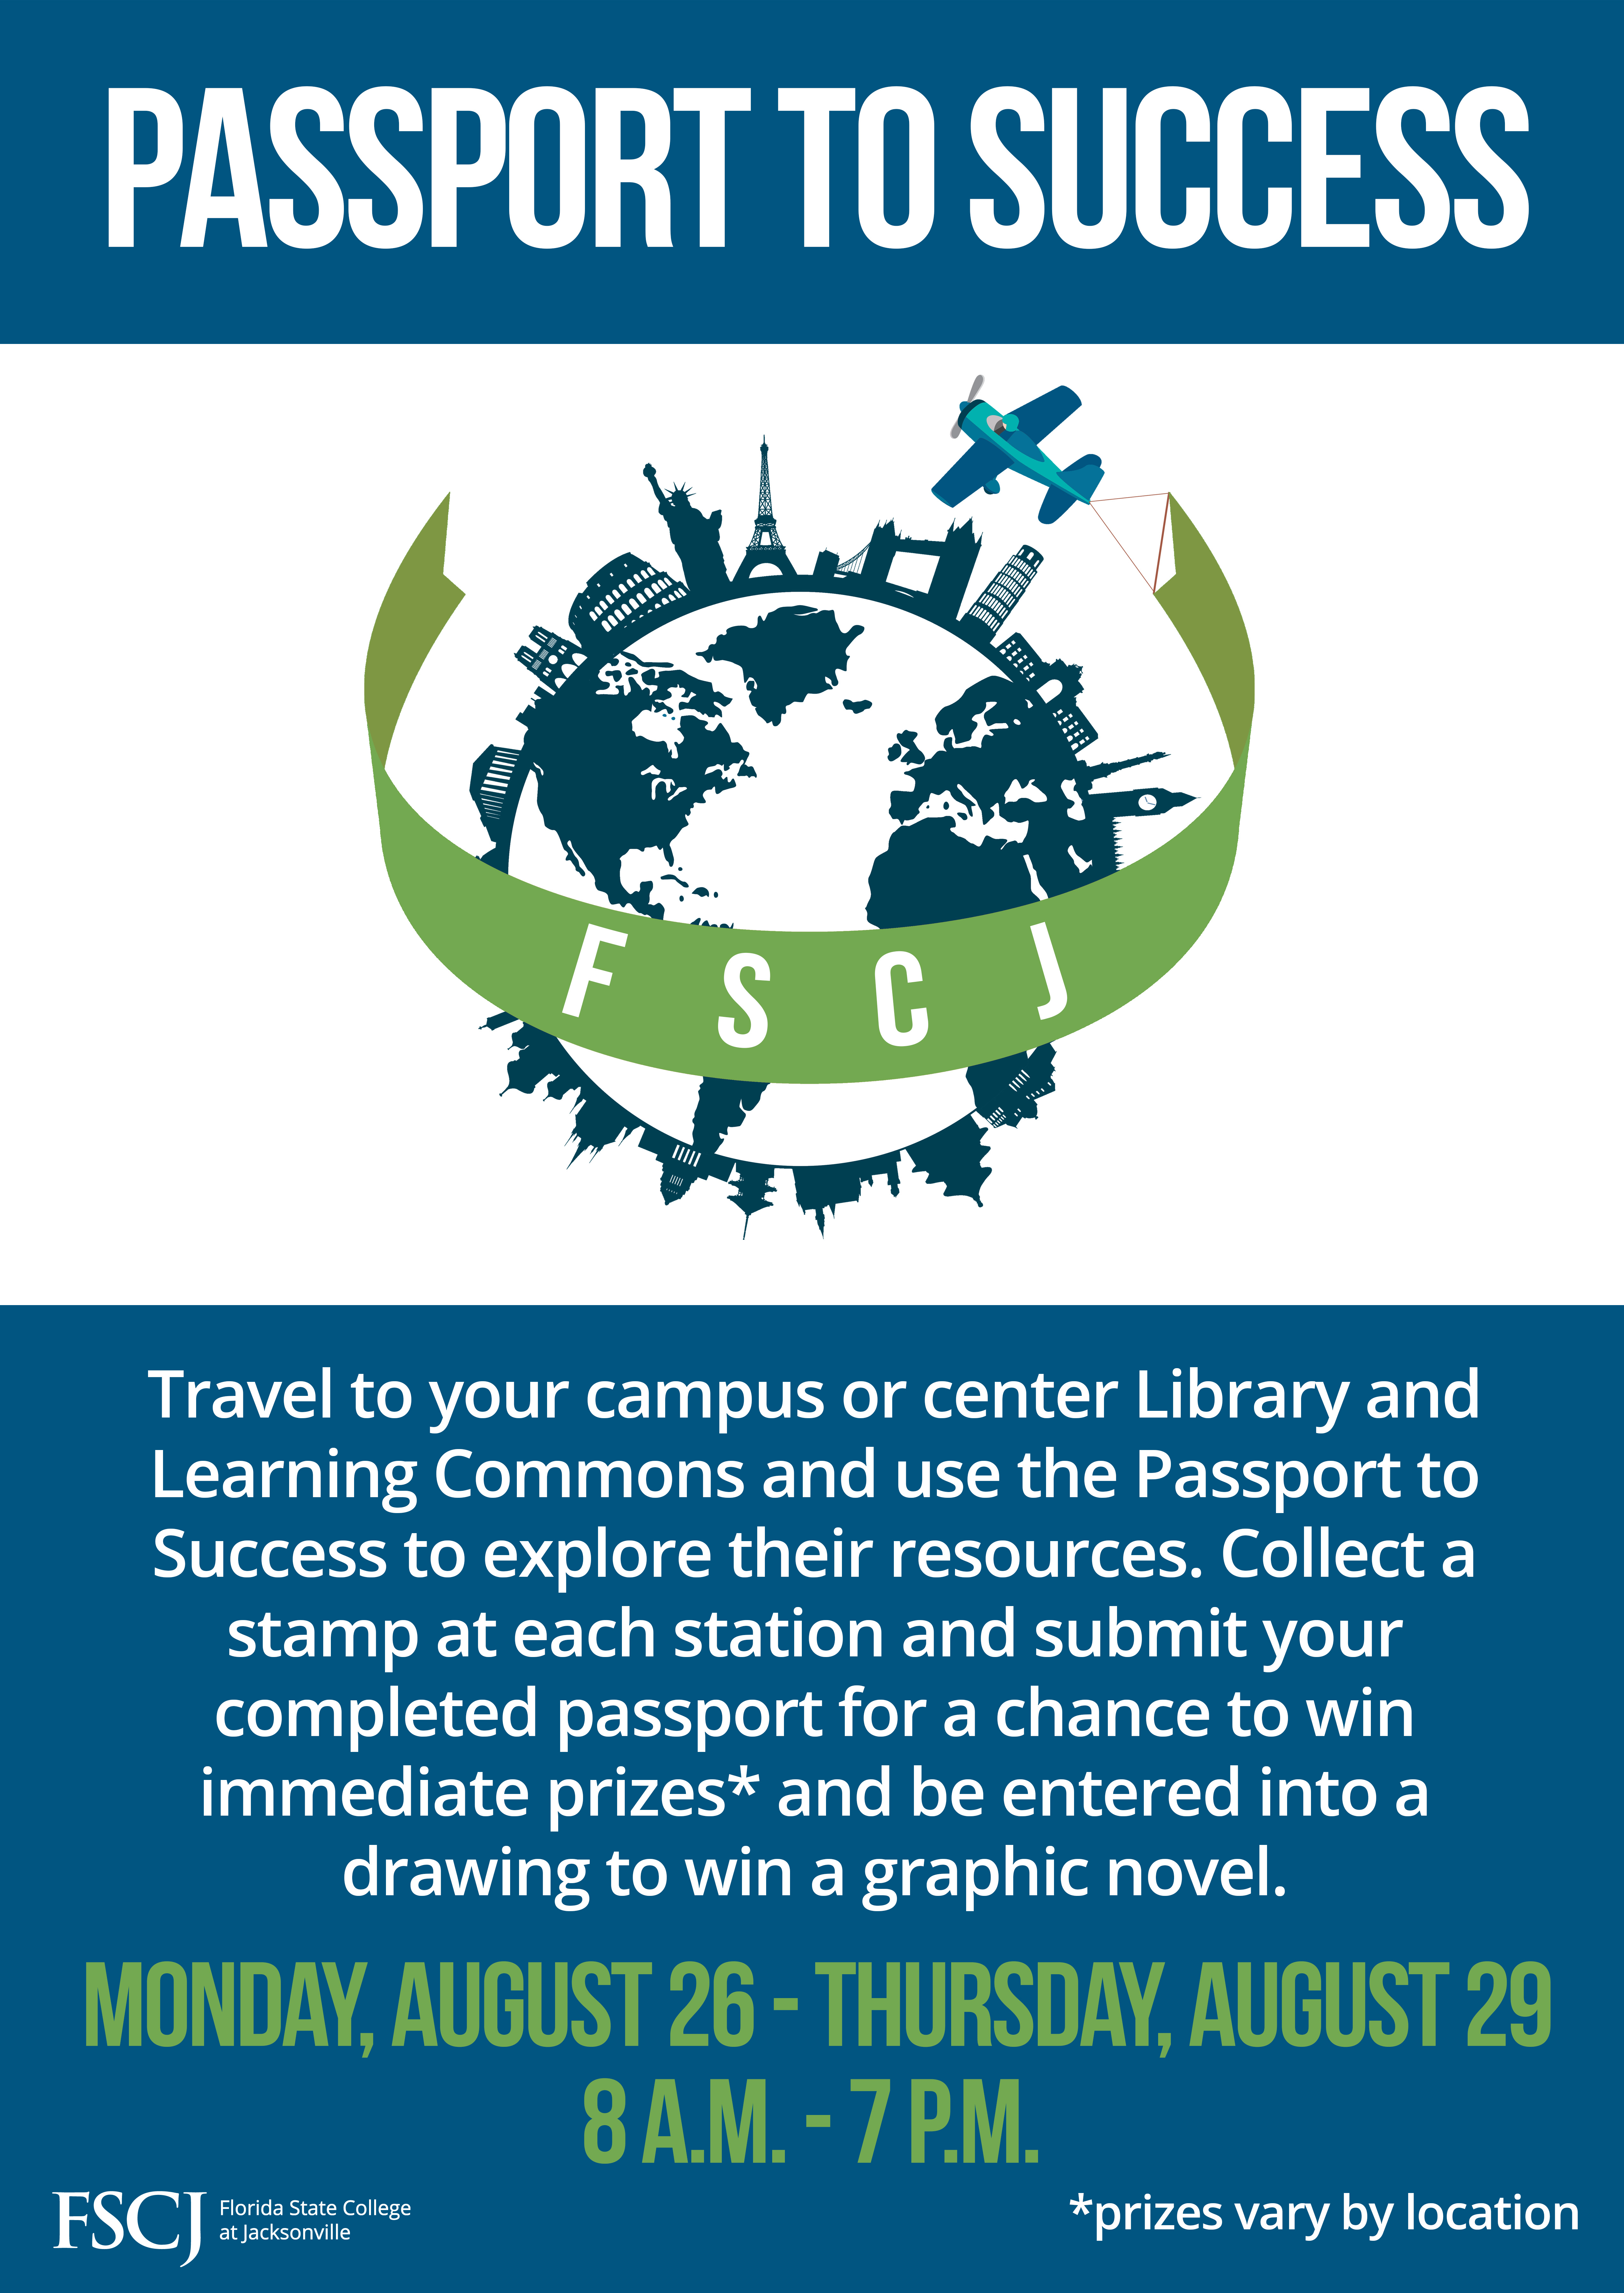 Visit the LLC during welcome week and complete their Passport to Success to win prizes